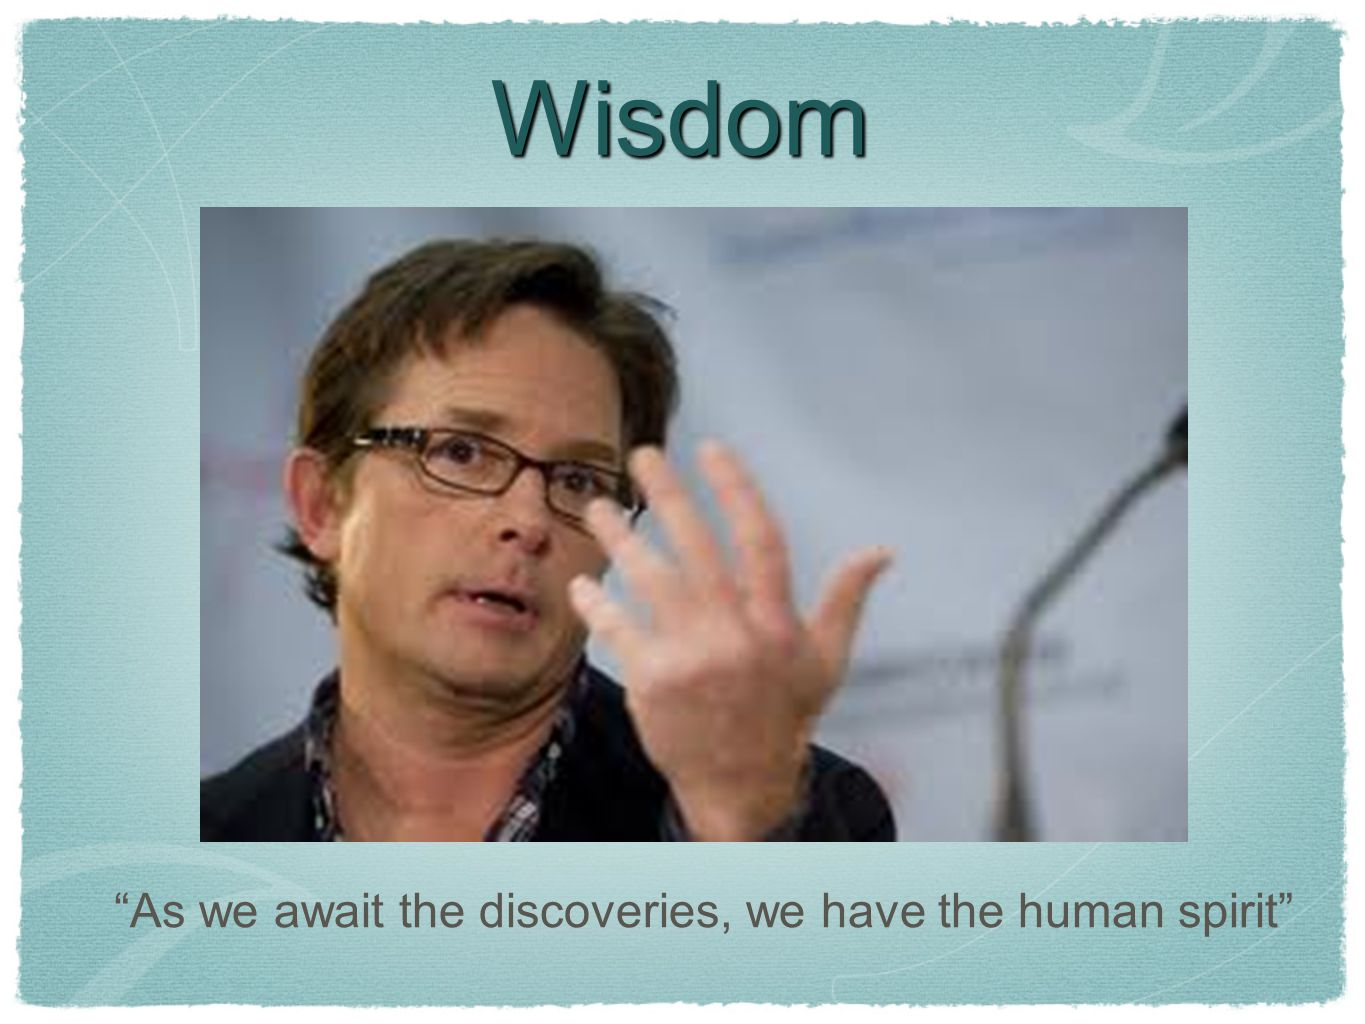 Wisdom As we await the discoveries, we have the human spirit